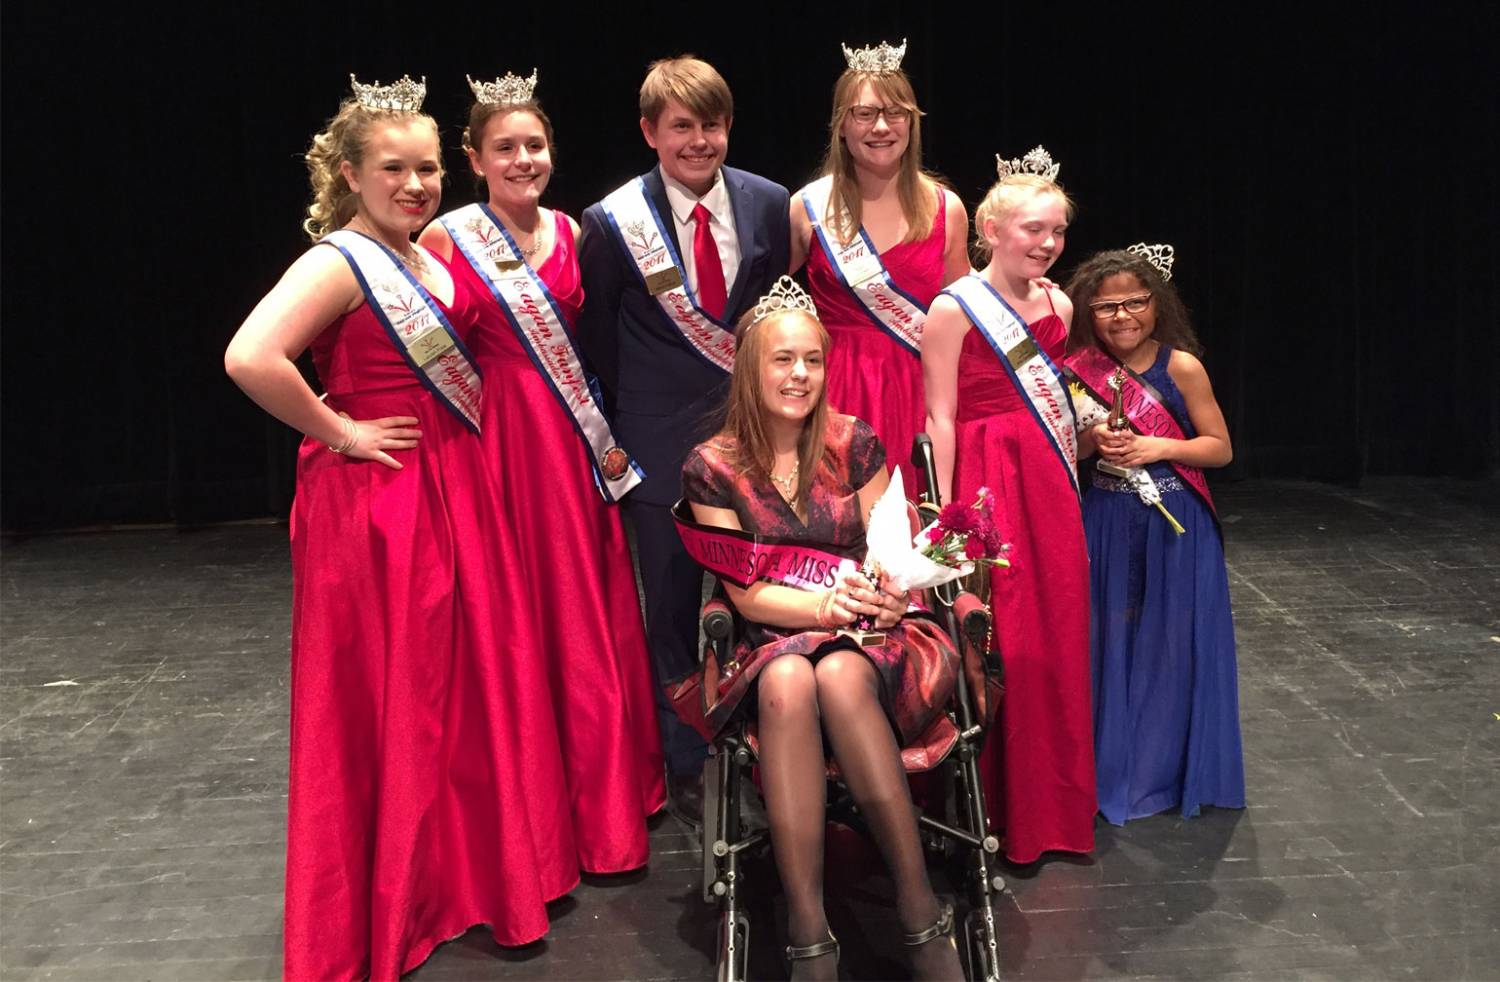 Katie Allee at the Miss Amazing Pageant